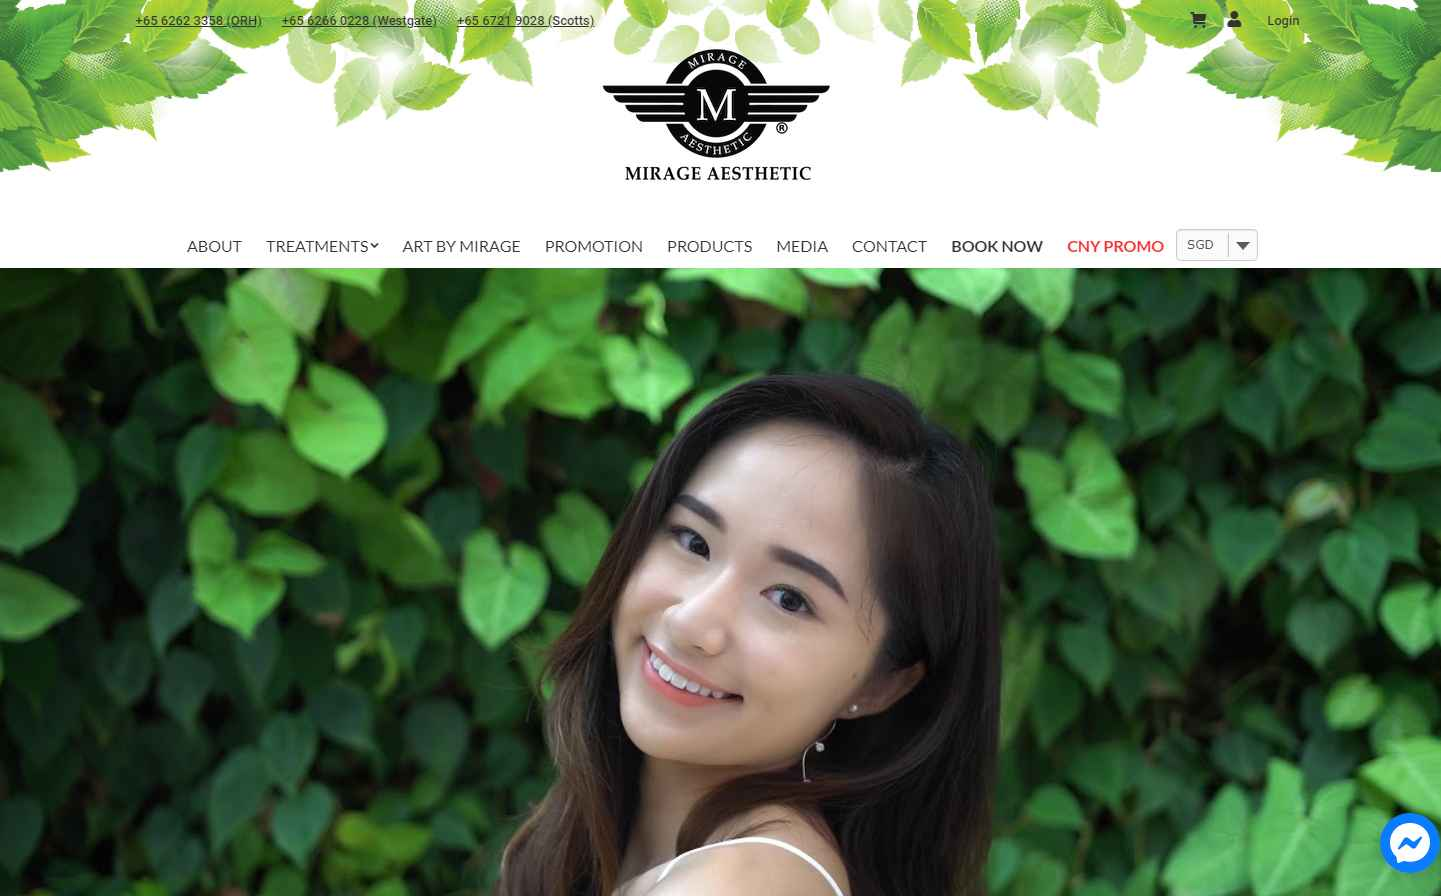 Mirage aesthetic Top Microblading Salons in Singapore